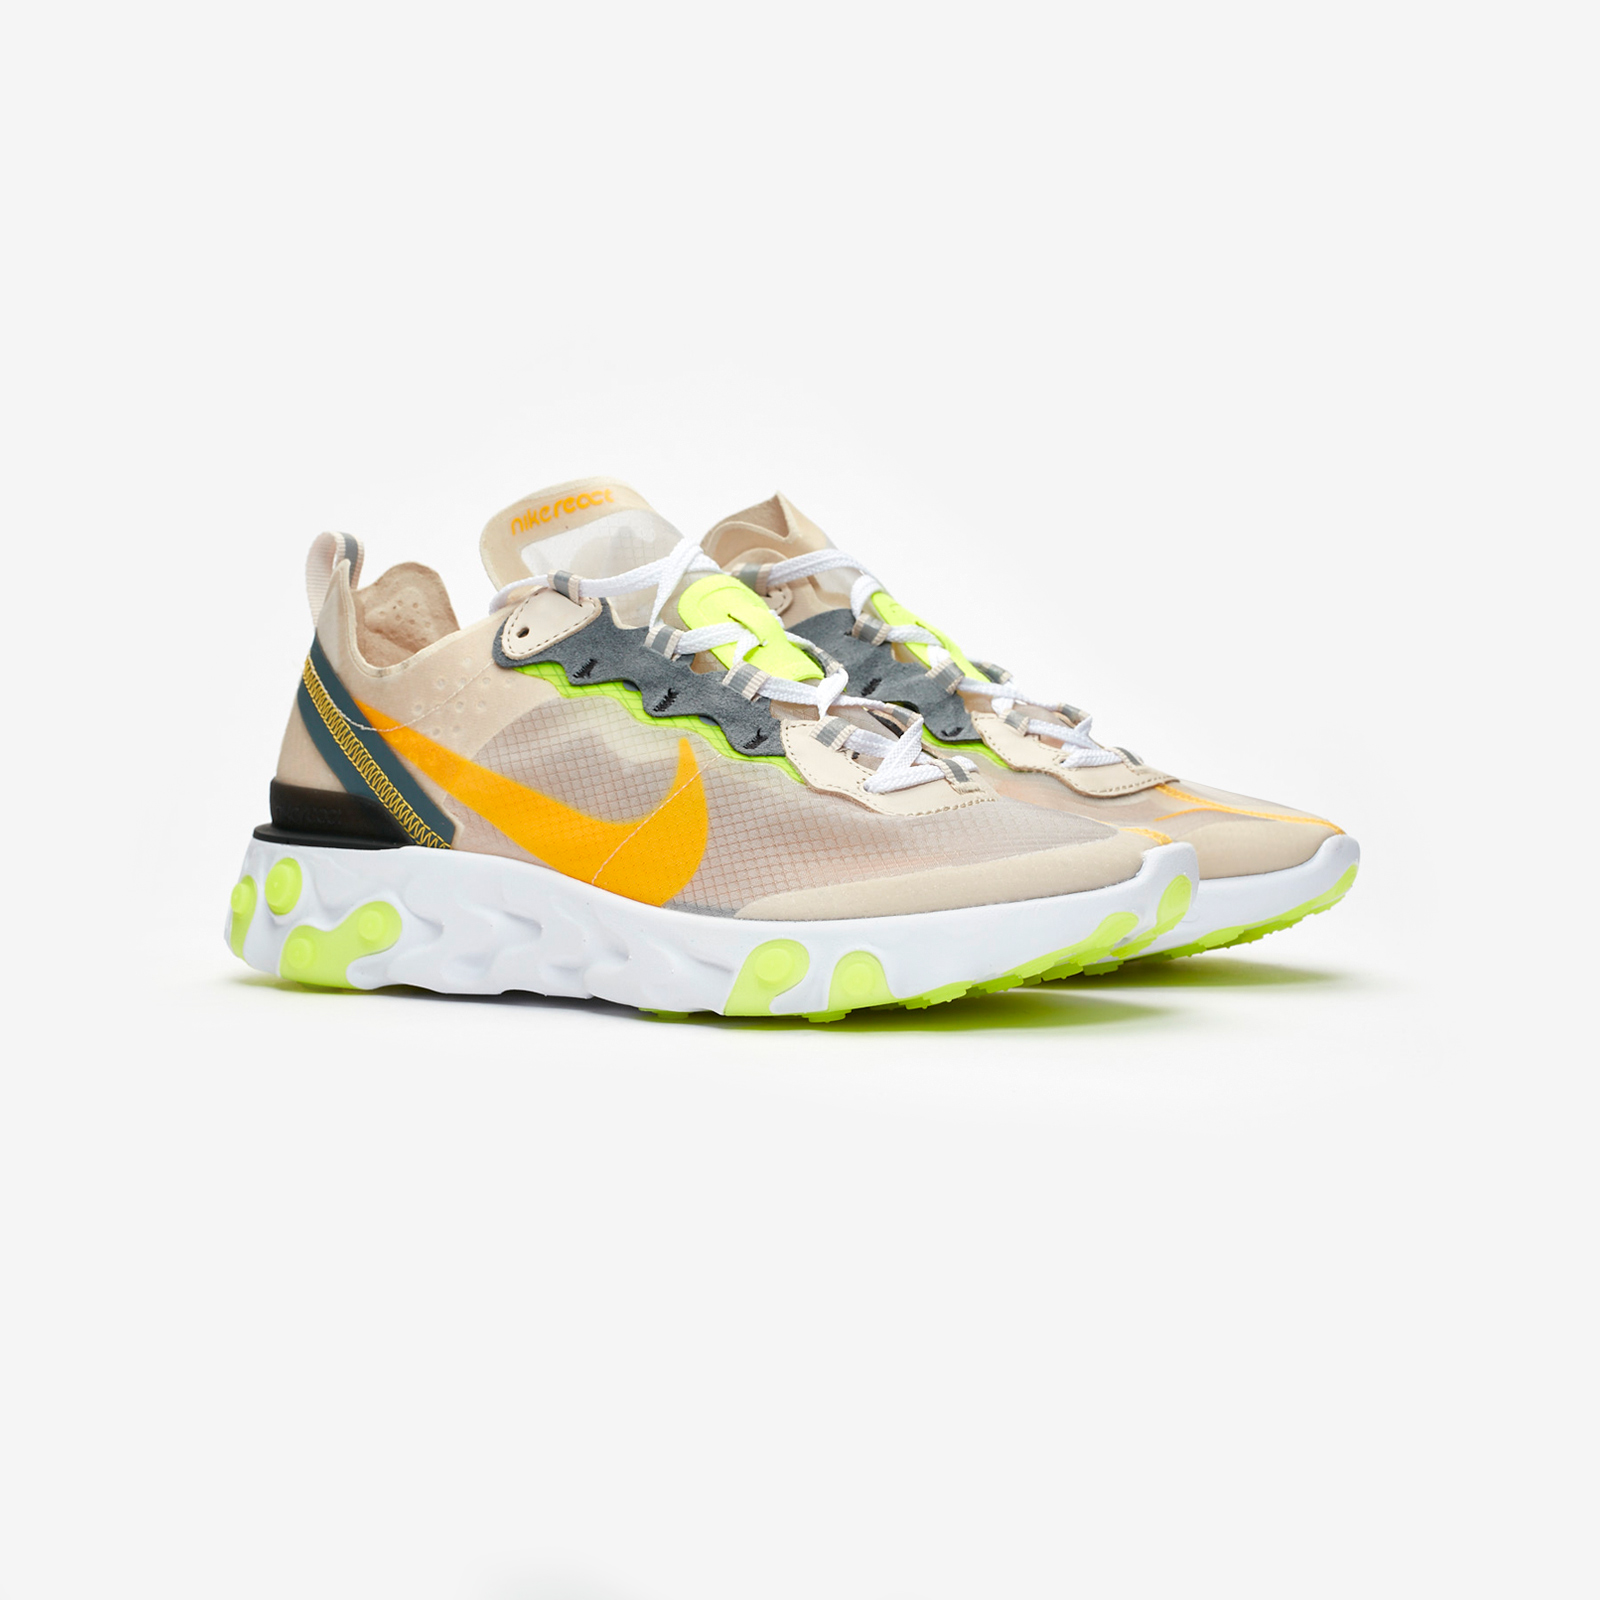 926db2a8da936 Nike React Element 87 - Aq1090-101 - Sneakersnstuff